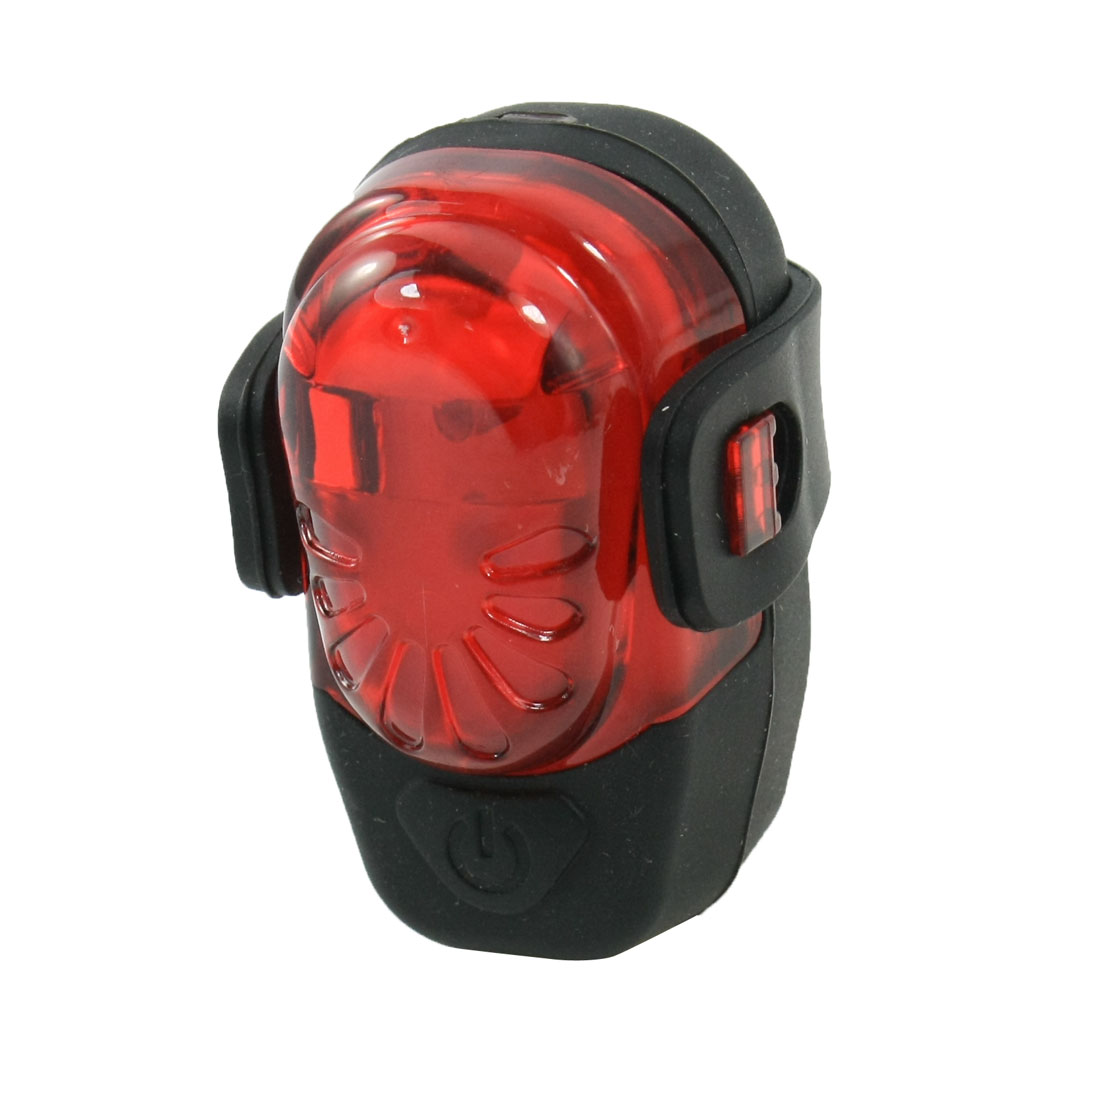 Battery Powered Red Light 2 LEDs Bike Cycling Rear Light Tail Lamp